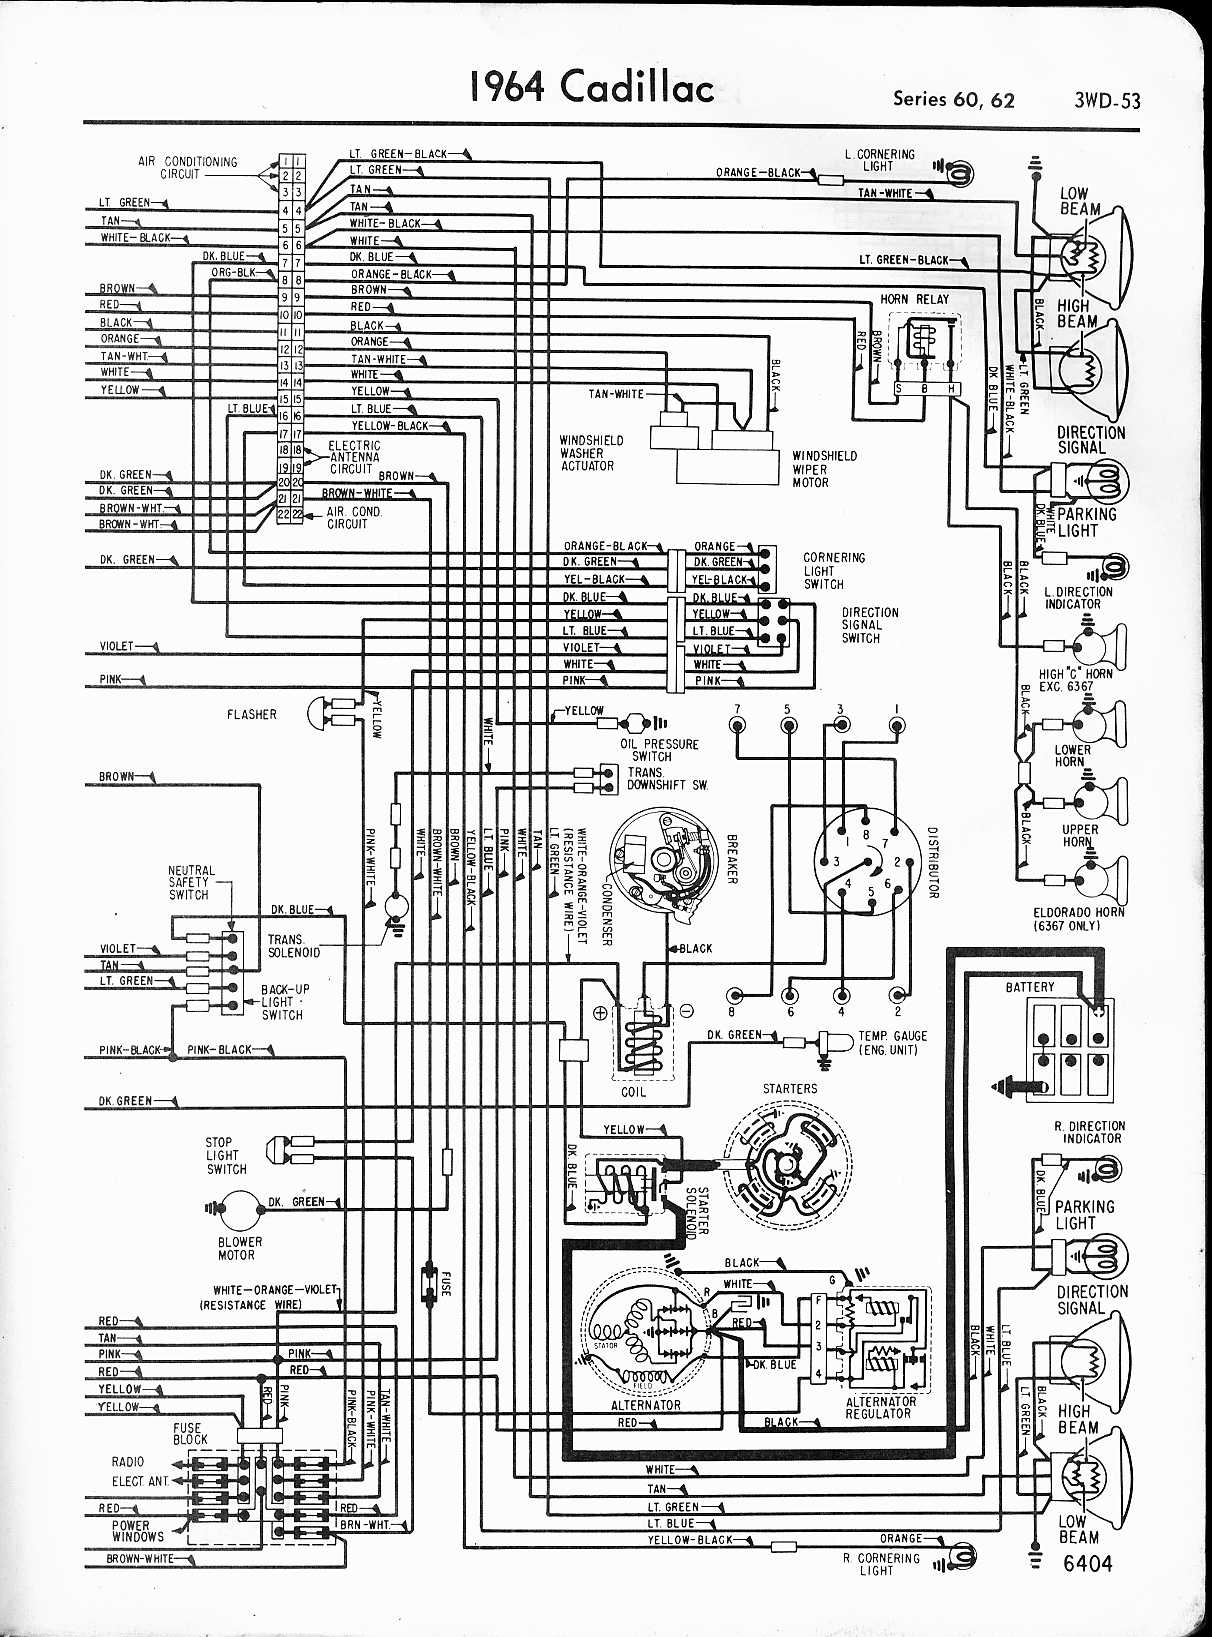 hight resolution of cadillac seville wiring diagram data wiring diagram 1992 cadillac seville stereo wiring diagram cadillac seville wiring